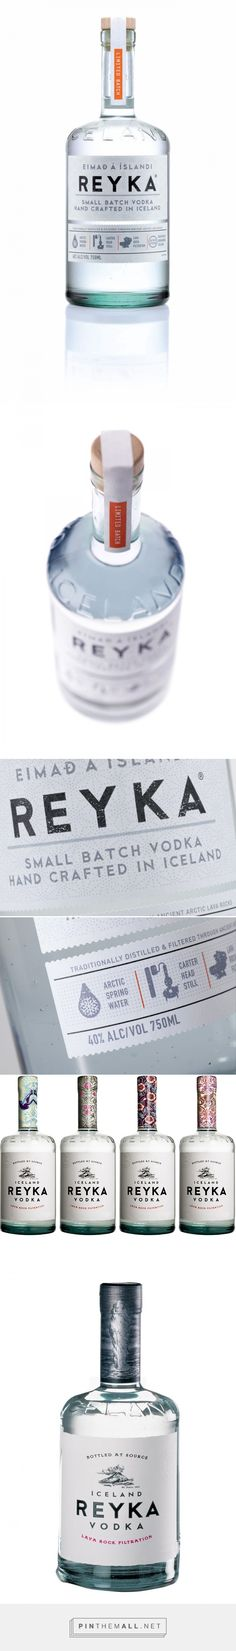 Before & After: Reyka — The Dieline - Branding & Packaging - created via http://pinthemall.net